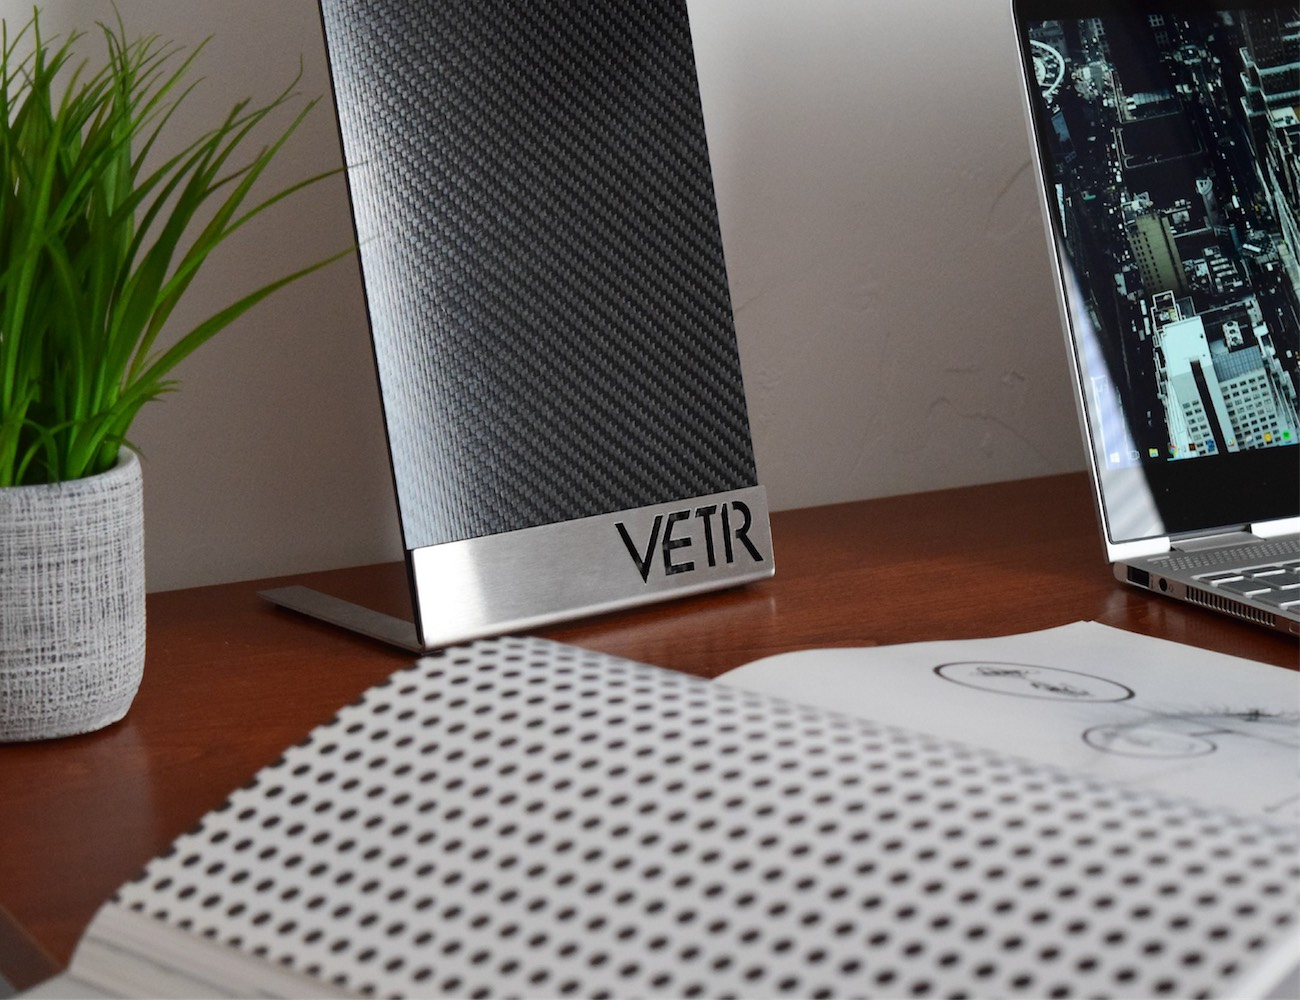 You Won't Believe Your Eyes When You See the Ultra-Slim VETR PANL1 Speakers